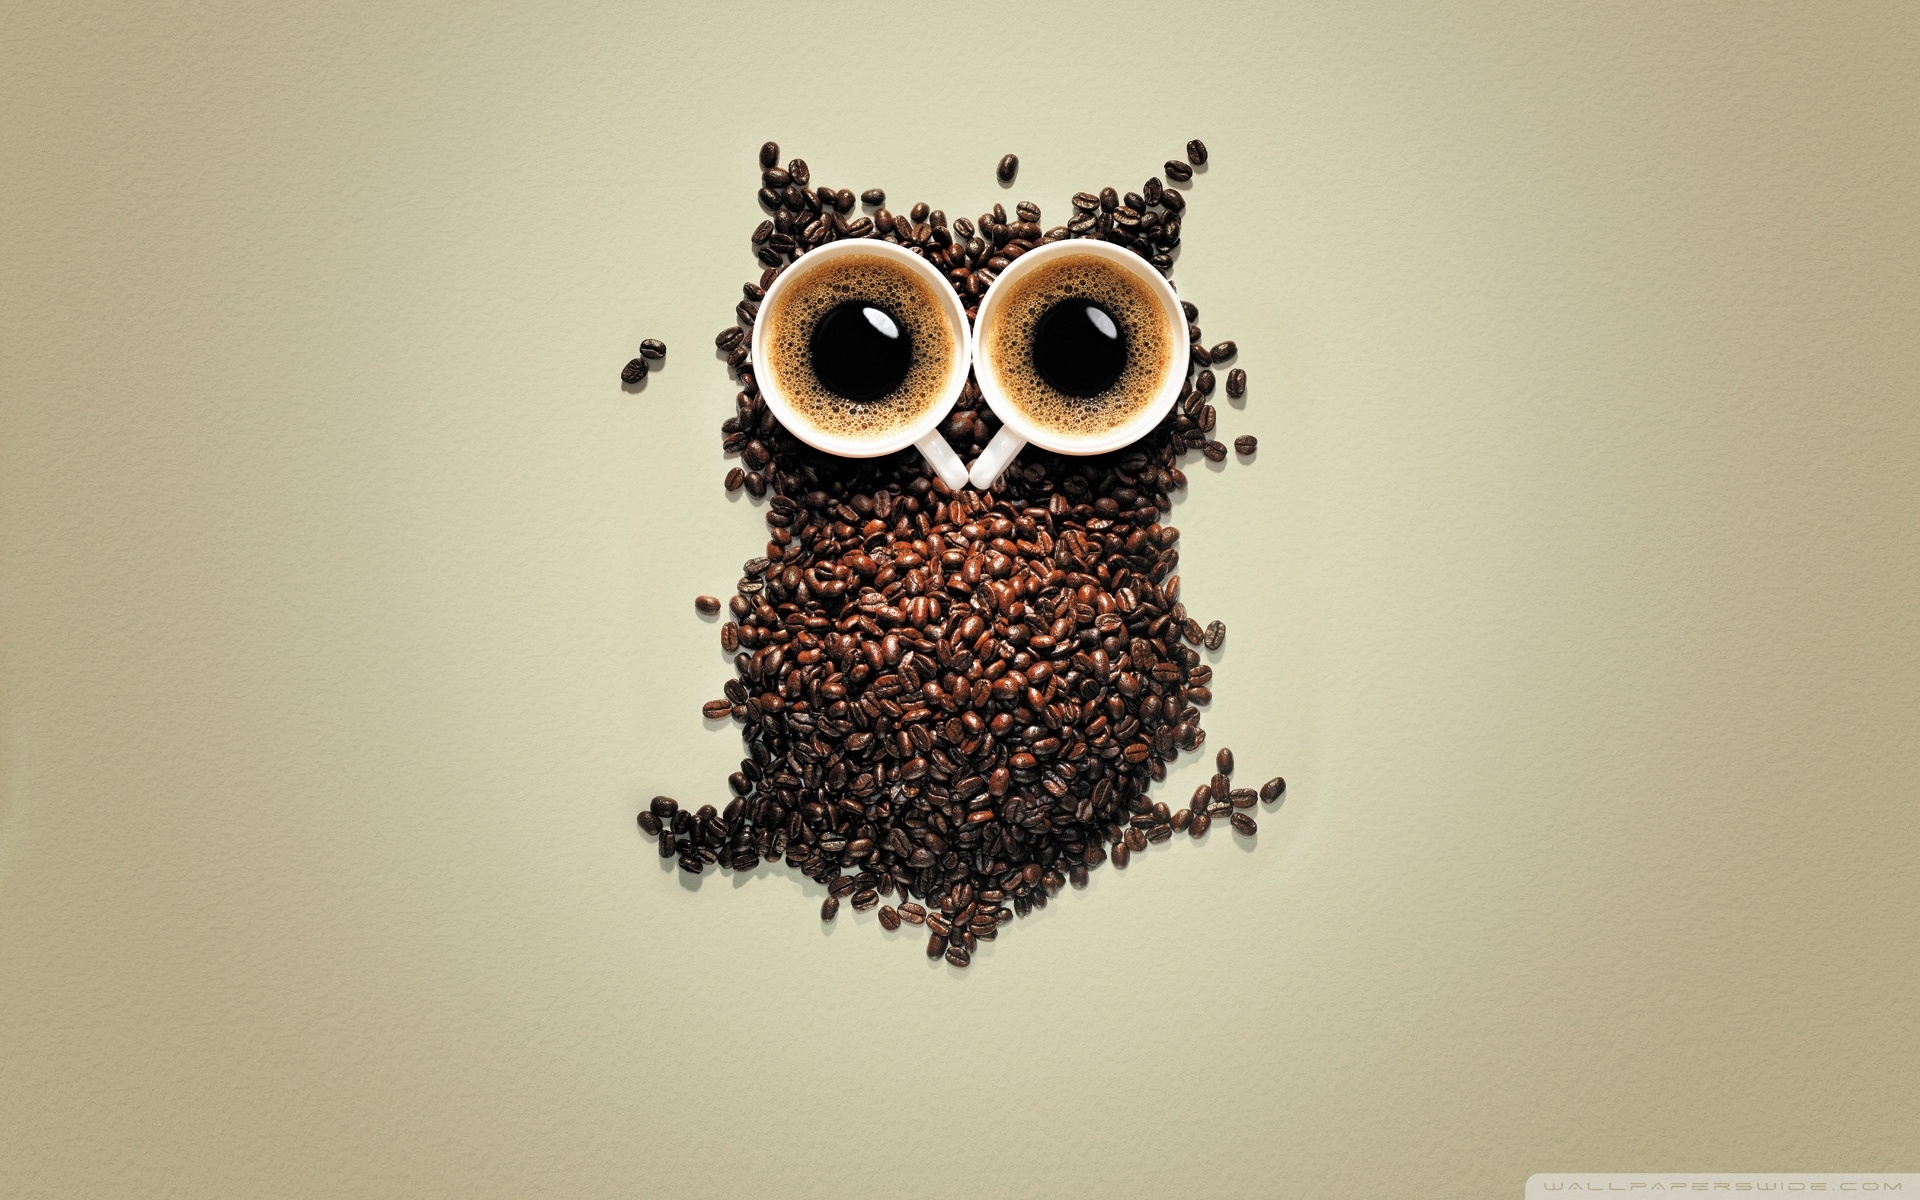 Download mobile wallpaper Coffee, Food, Drinks, Funny for free.